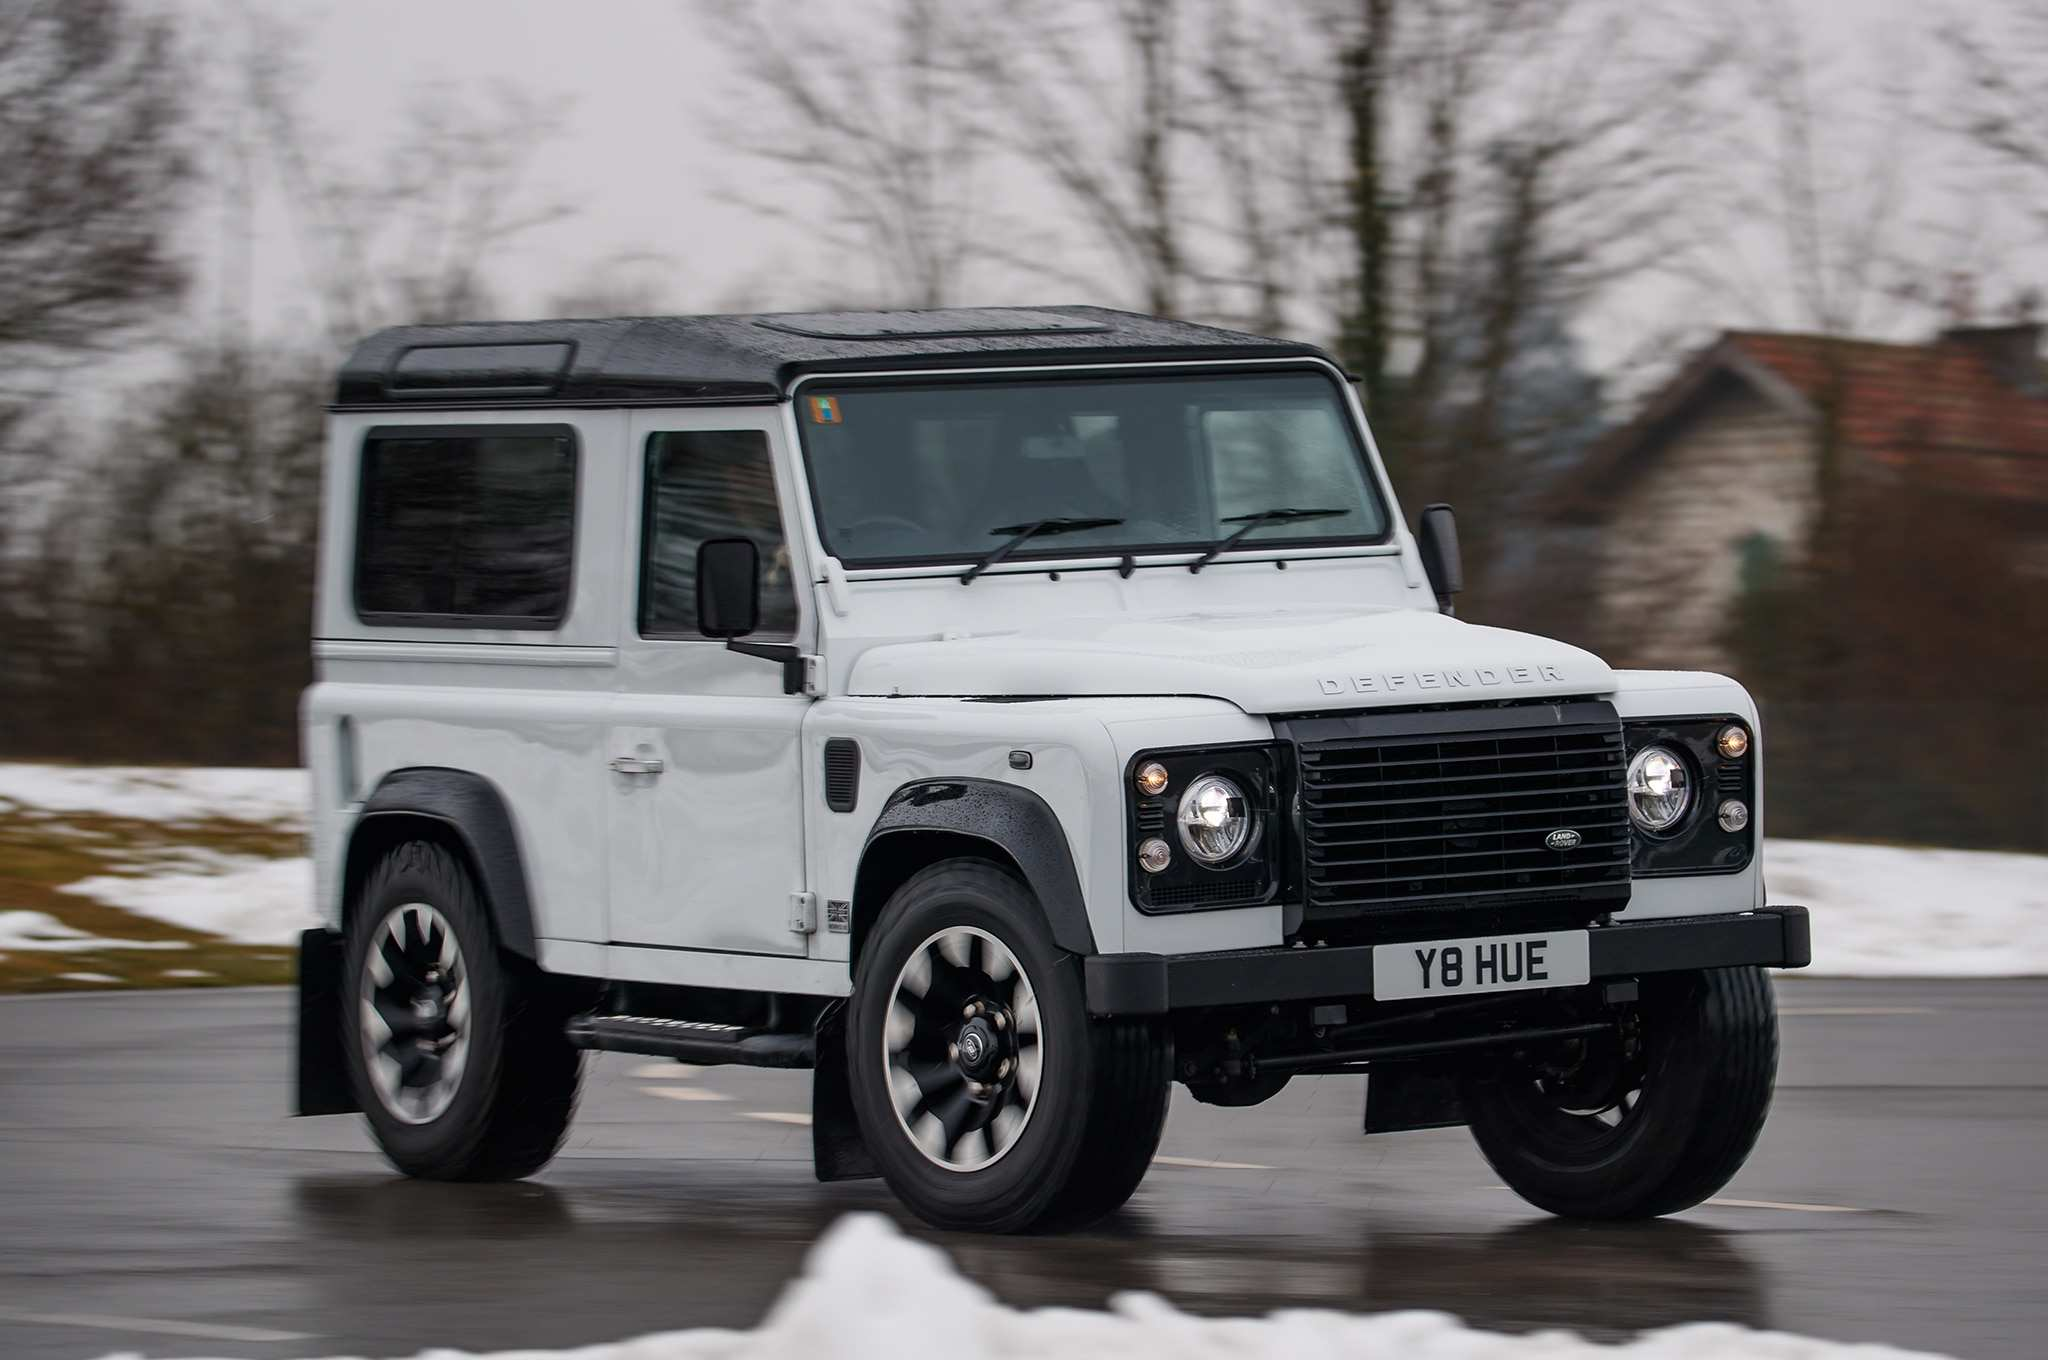 63 Concept of 2019 Land Rover Defender Review with 2019 Land Rover Defender